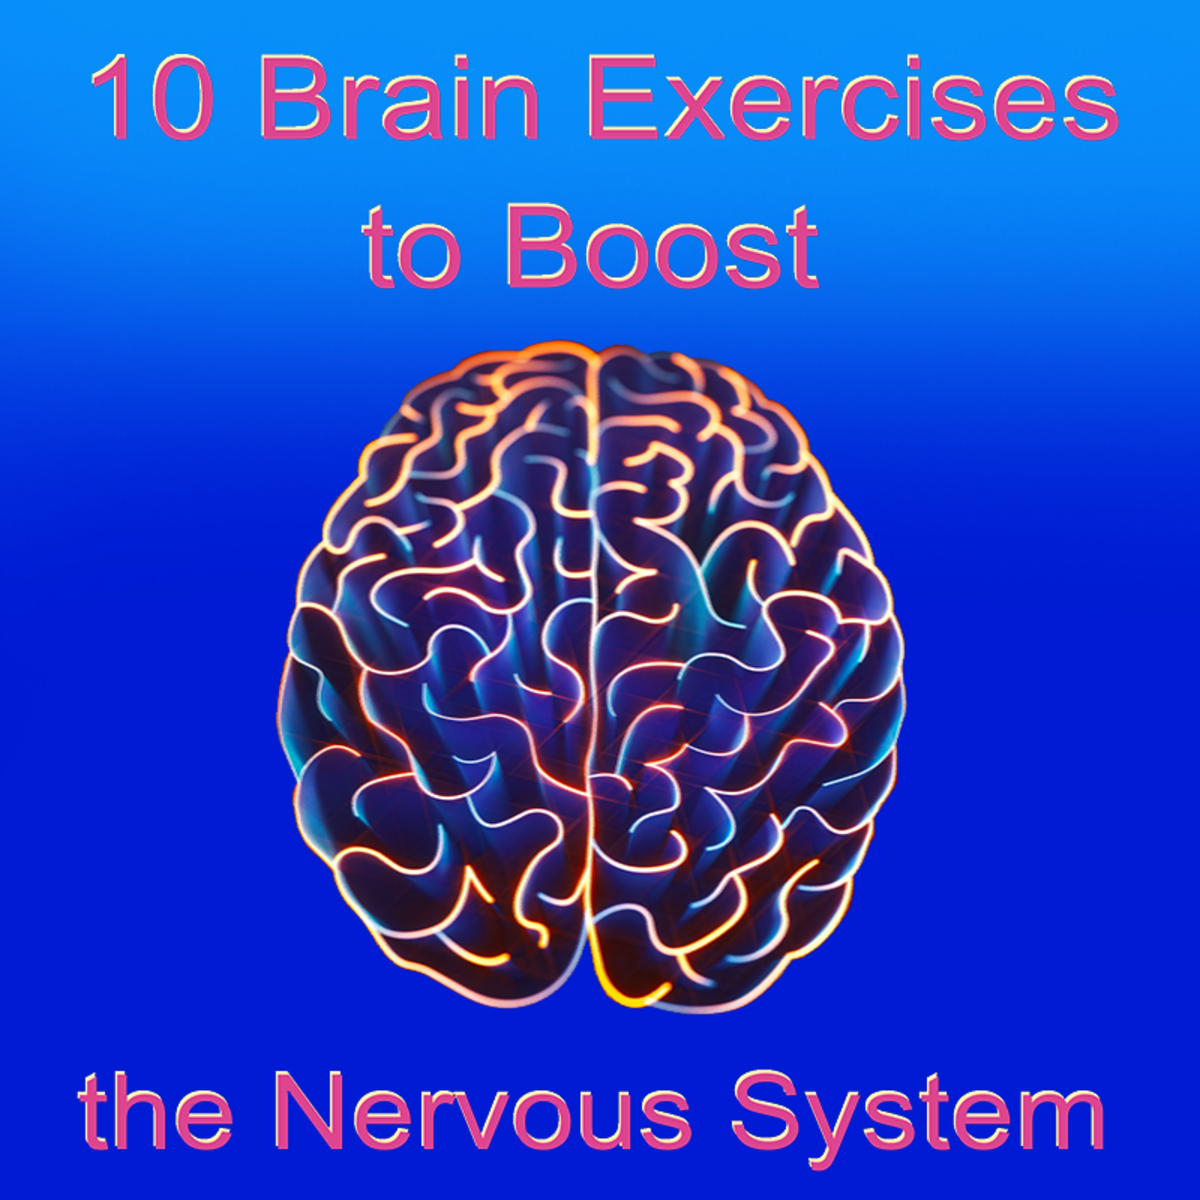 10-brain-exercises-to-boost-the-nervous-system-and-keep-you-young